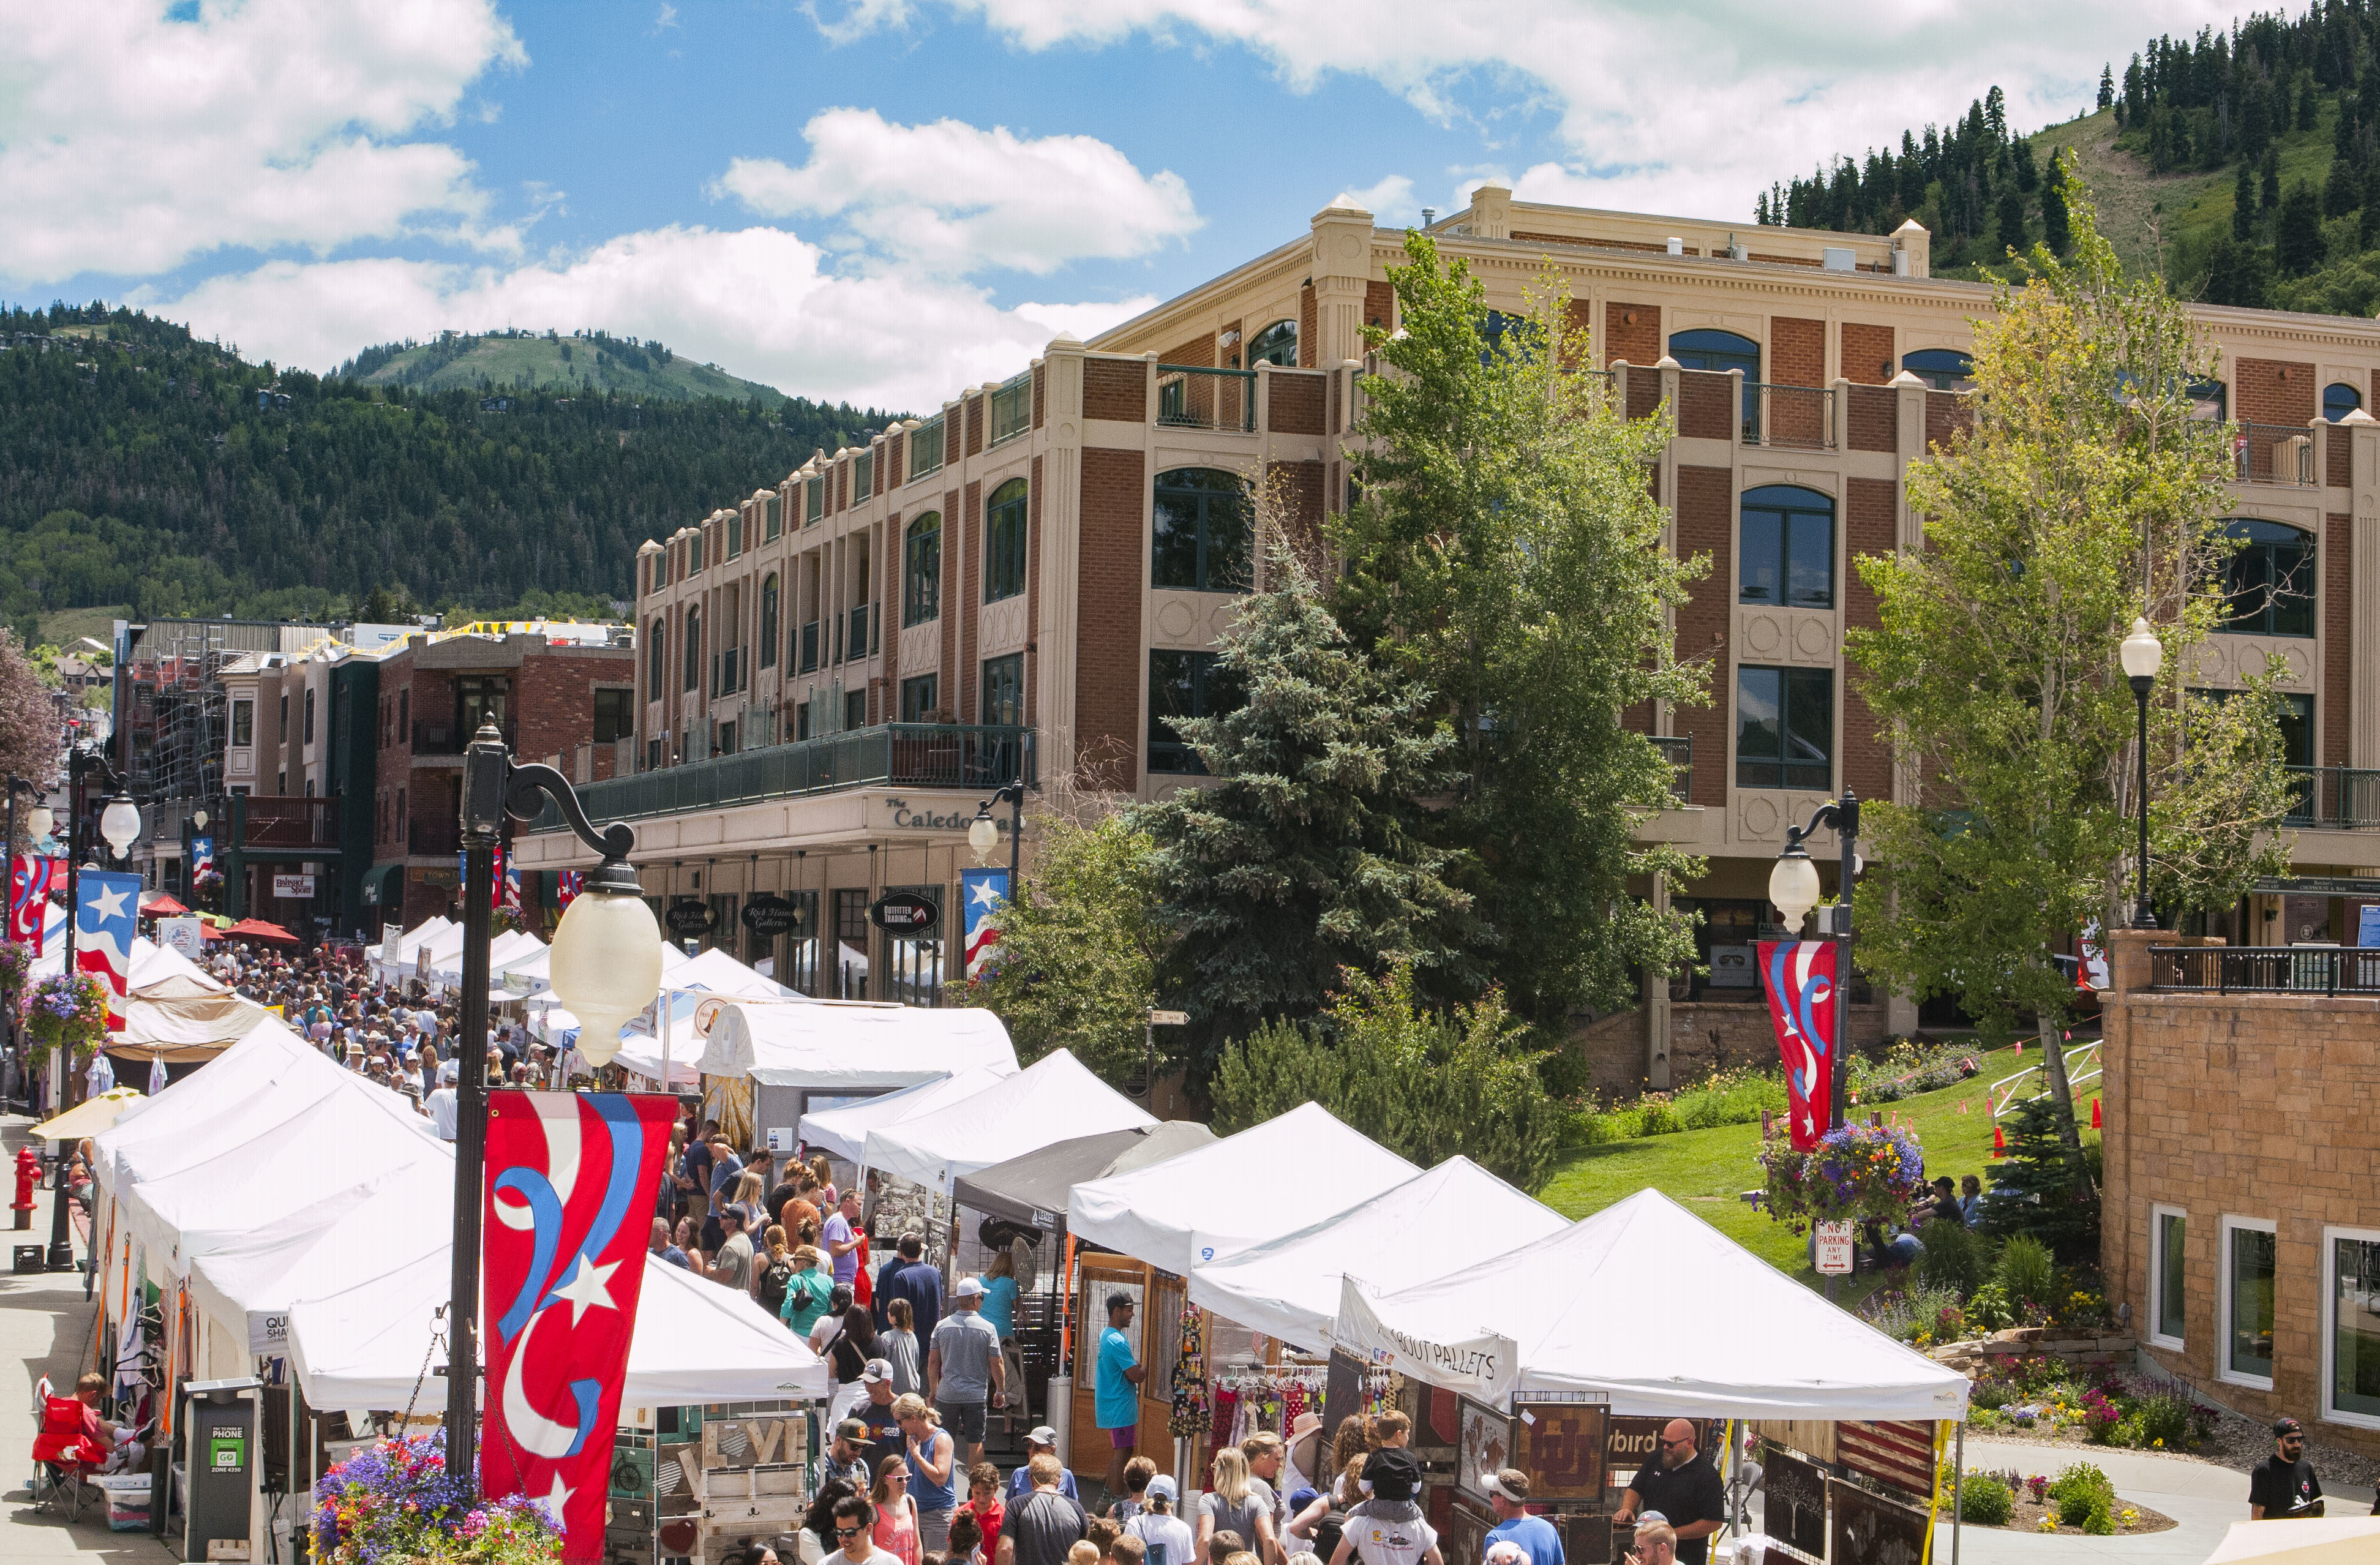 Festival in Summer on Main Street Park City, Deer Valley Rises in the Background and The Caledonian Hotel is Featured in the Midground